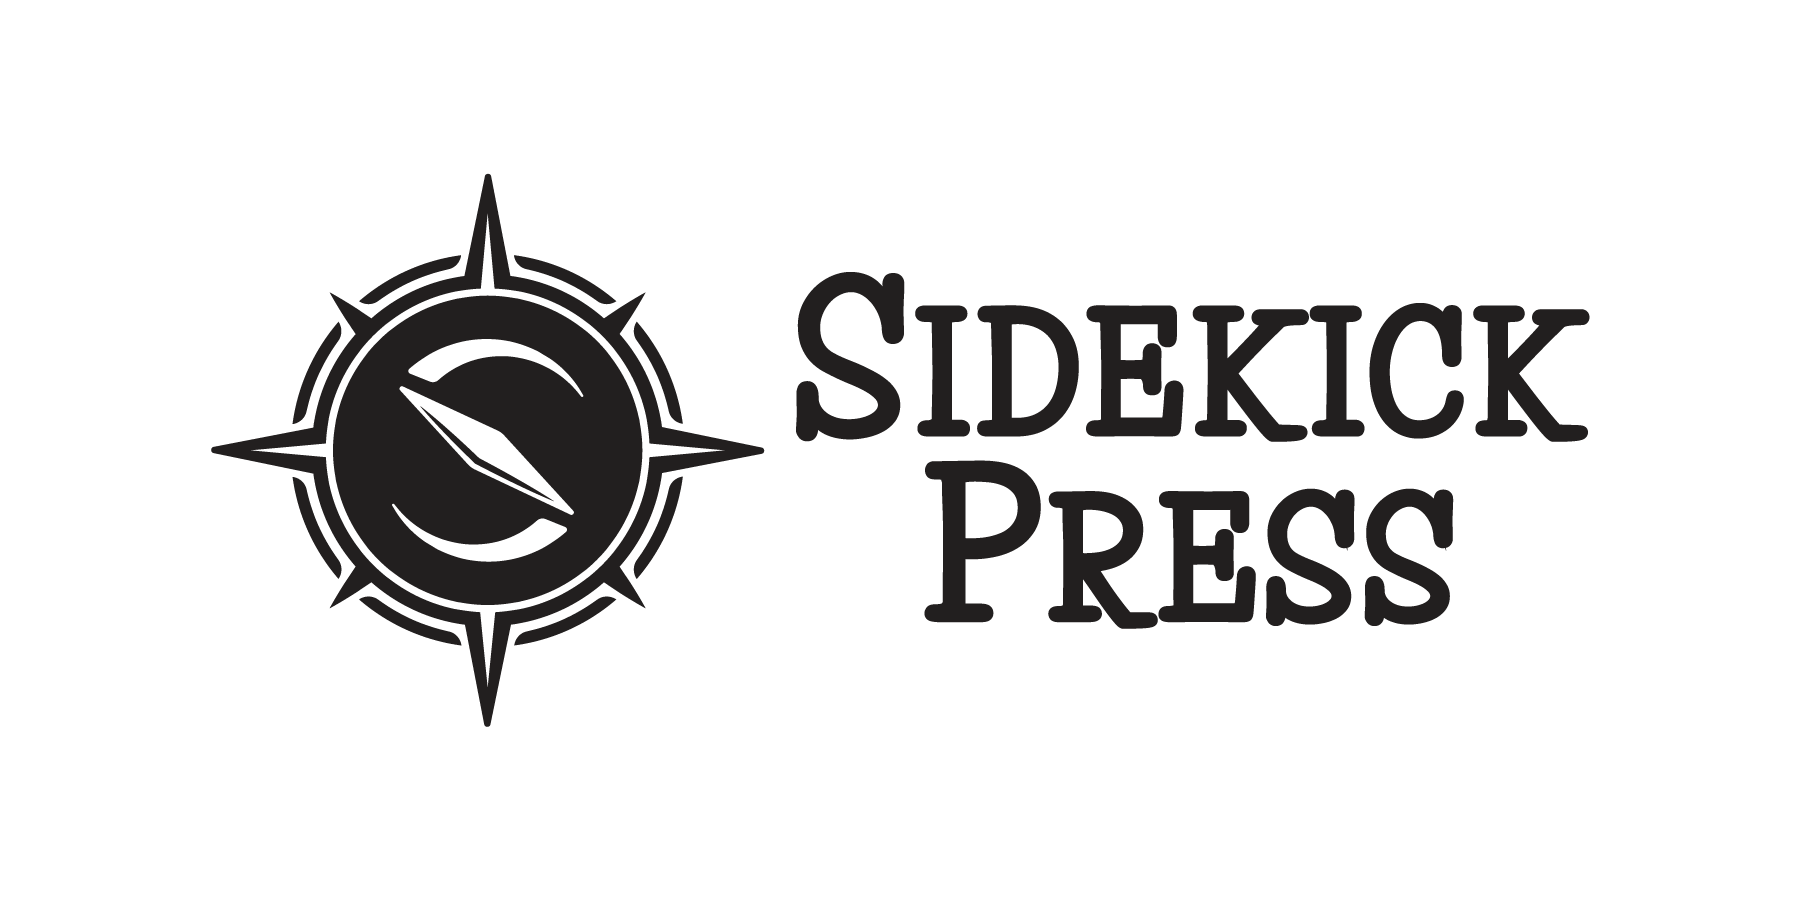 Sidekick Press